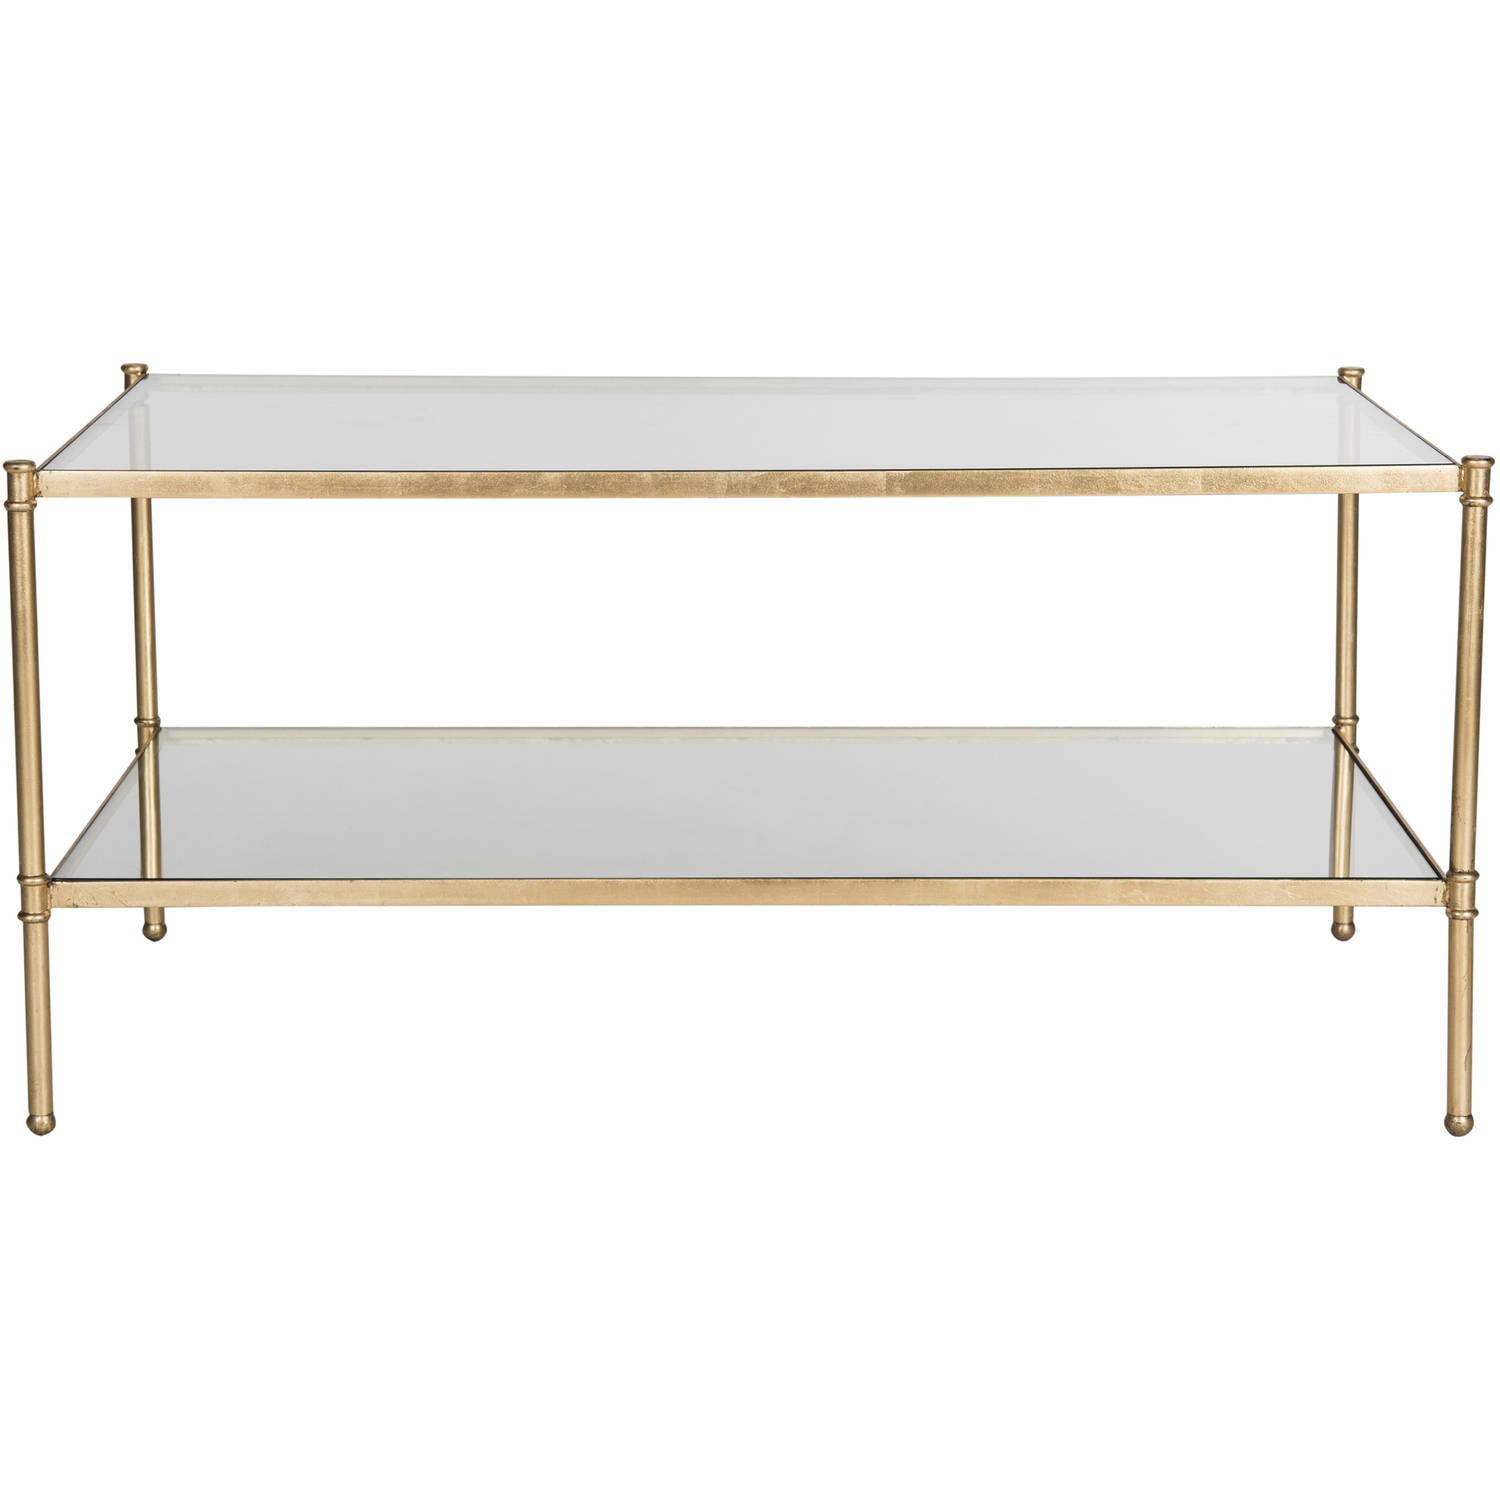 "Safavieh Aslan 42"" Width Iron Coffee Table, Antique Gold w  Glass Top by Safavieh"